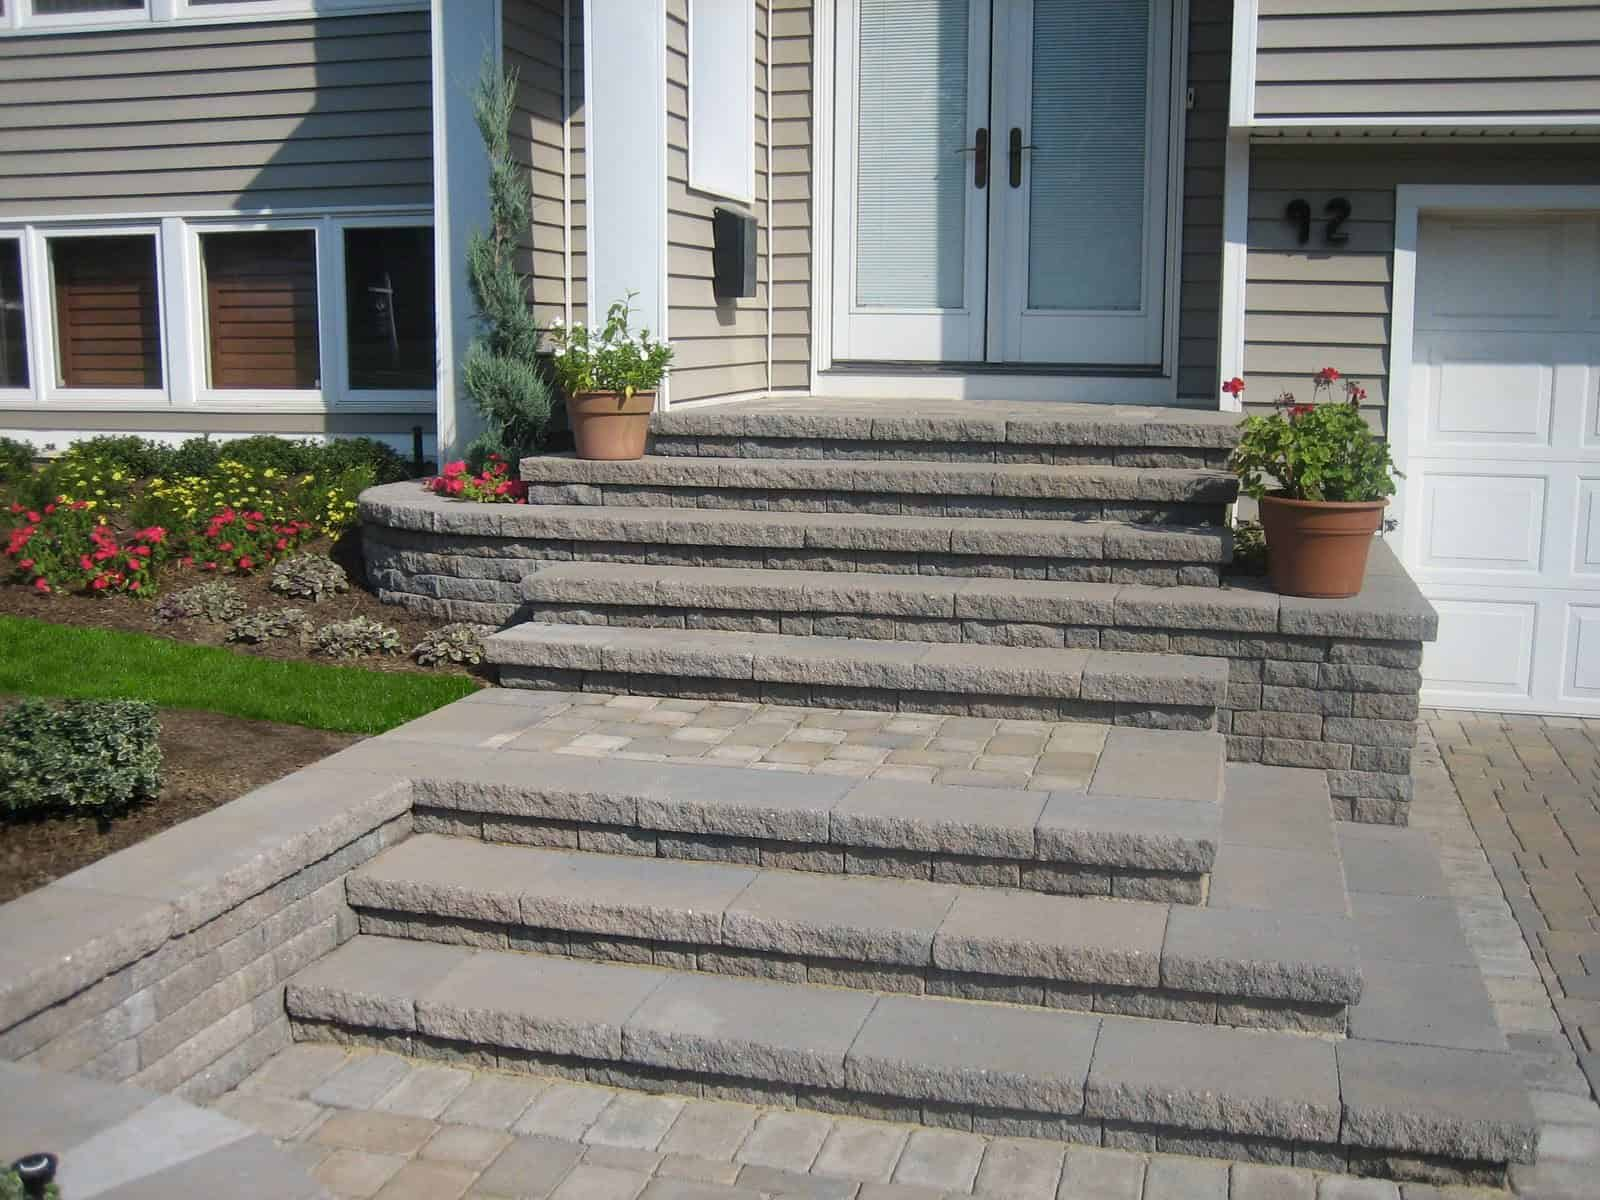 Paver Driveway - Cambridge - Tumbled Matryx Wall – Renaissance Collection - Color - Toffee/Onyx - Jericho, Long Island NY